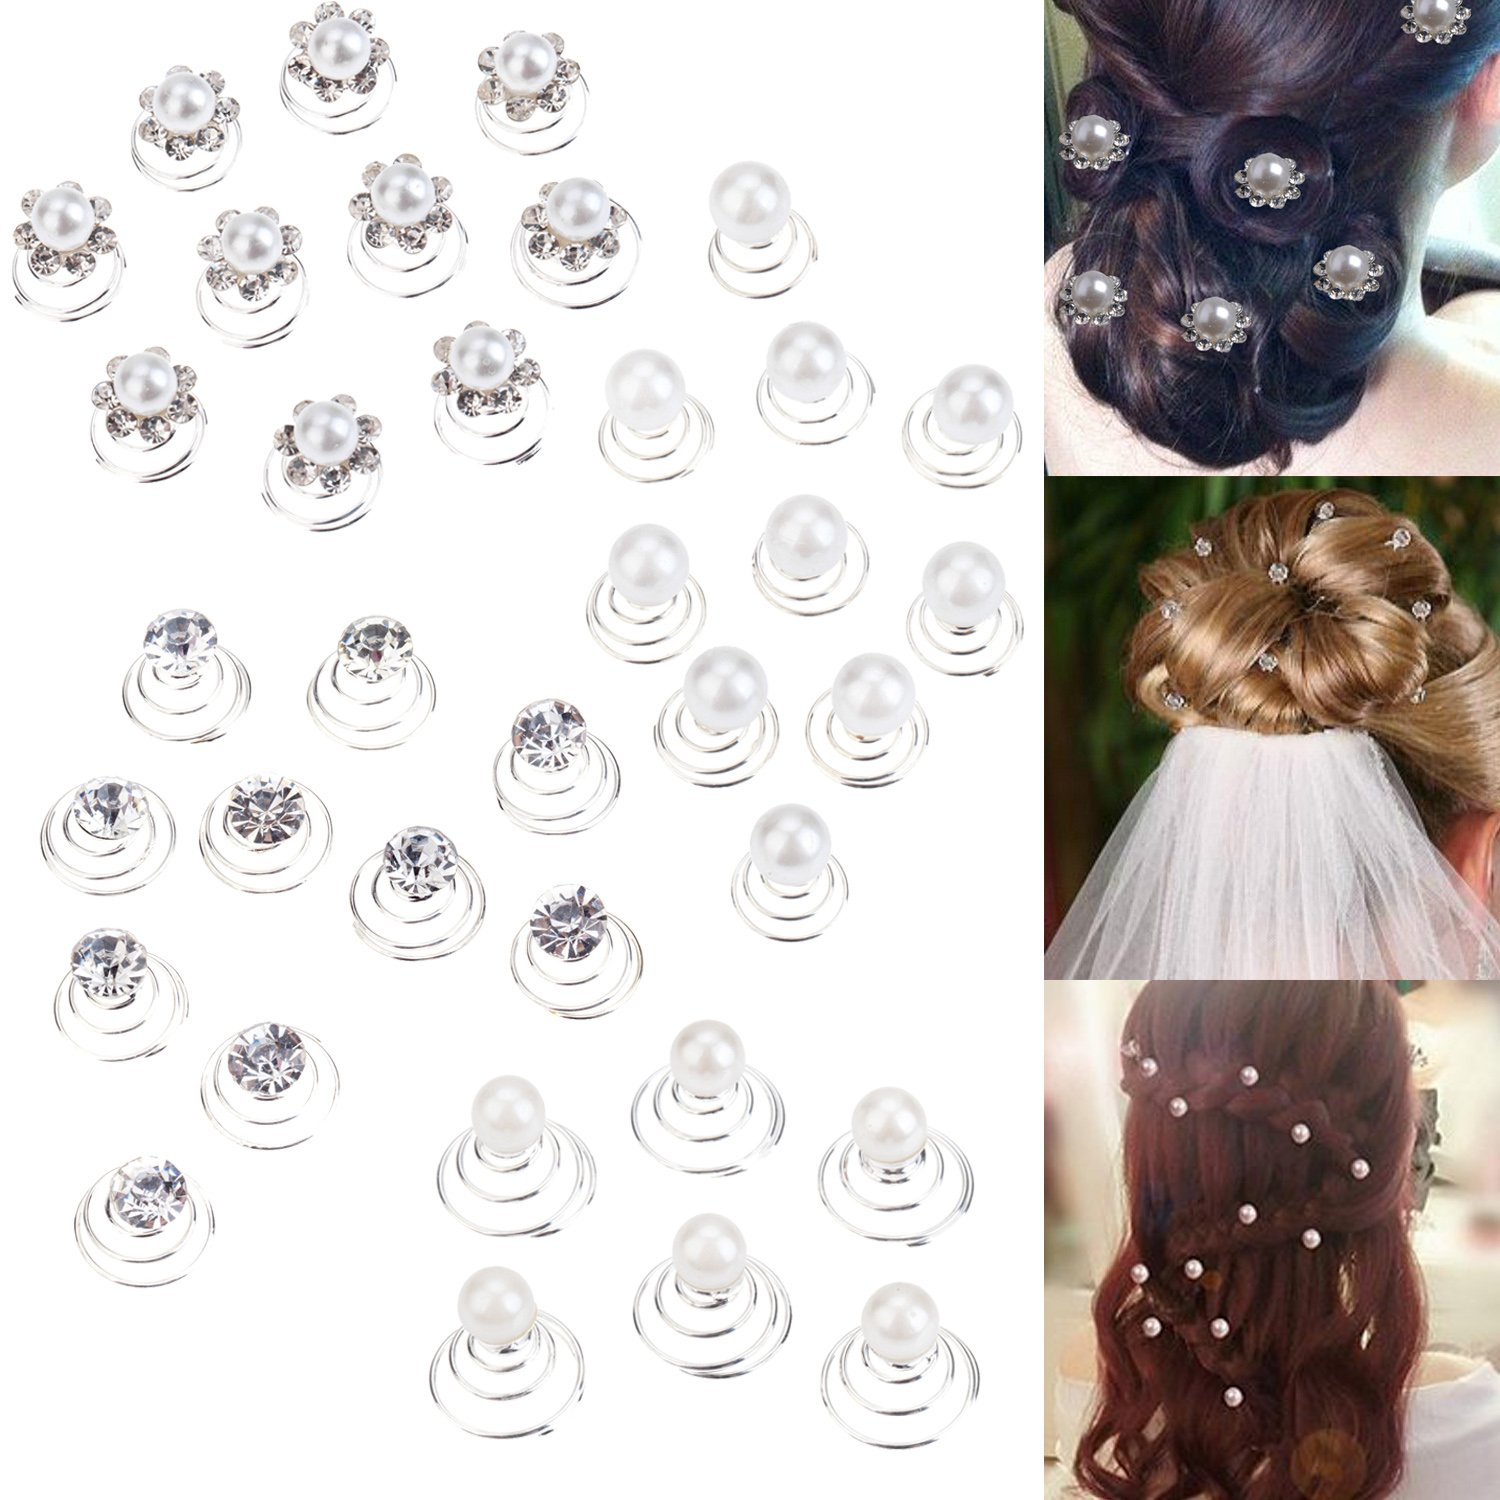 Set of 36pcs Silver Iron Spirals Hair Pins / Twists / Coils / Curlies / Weddings Brides Hairstyles / Proms / Balls Decorations With White And Champagne Pearls And Clear Rhinestones / Crystals By VAGA